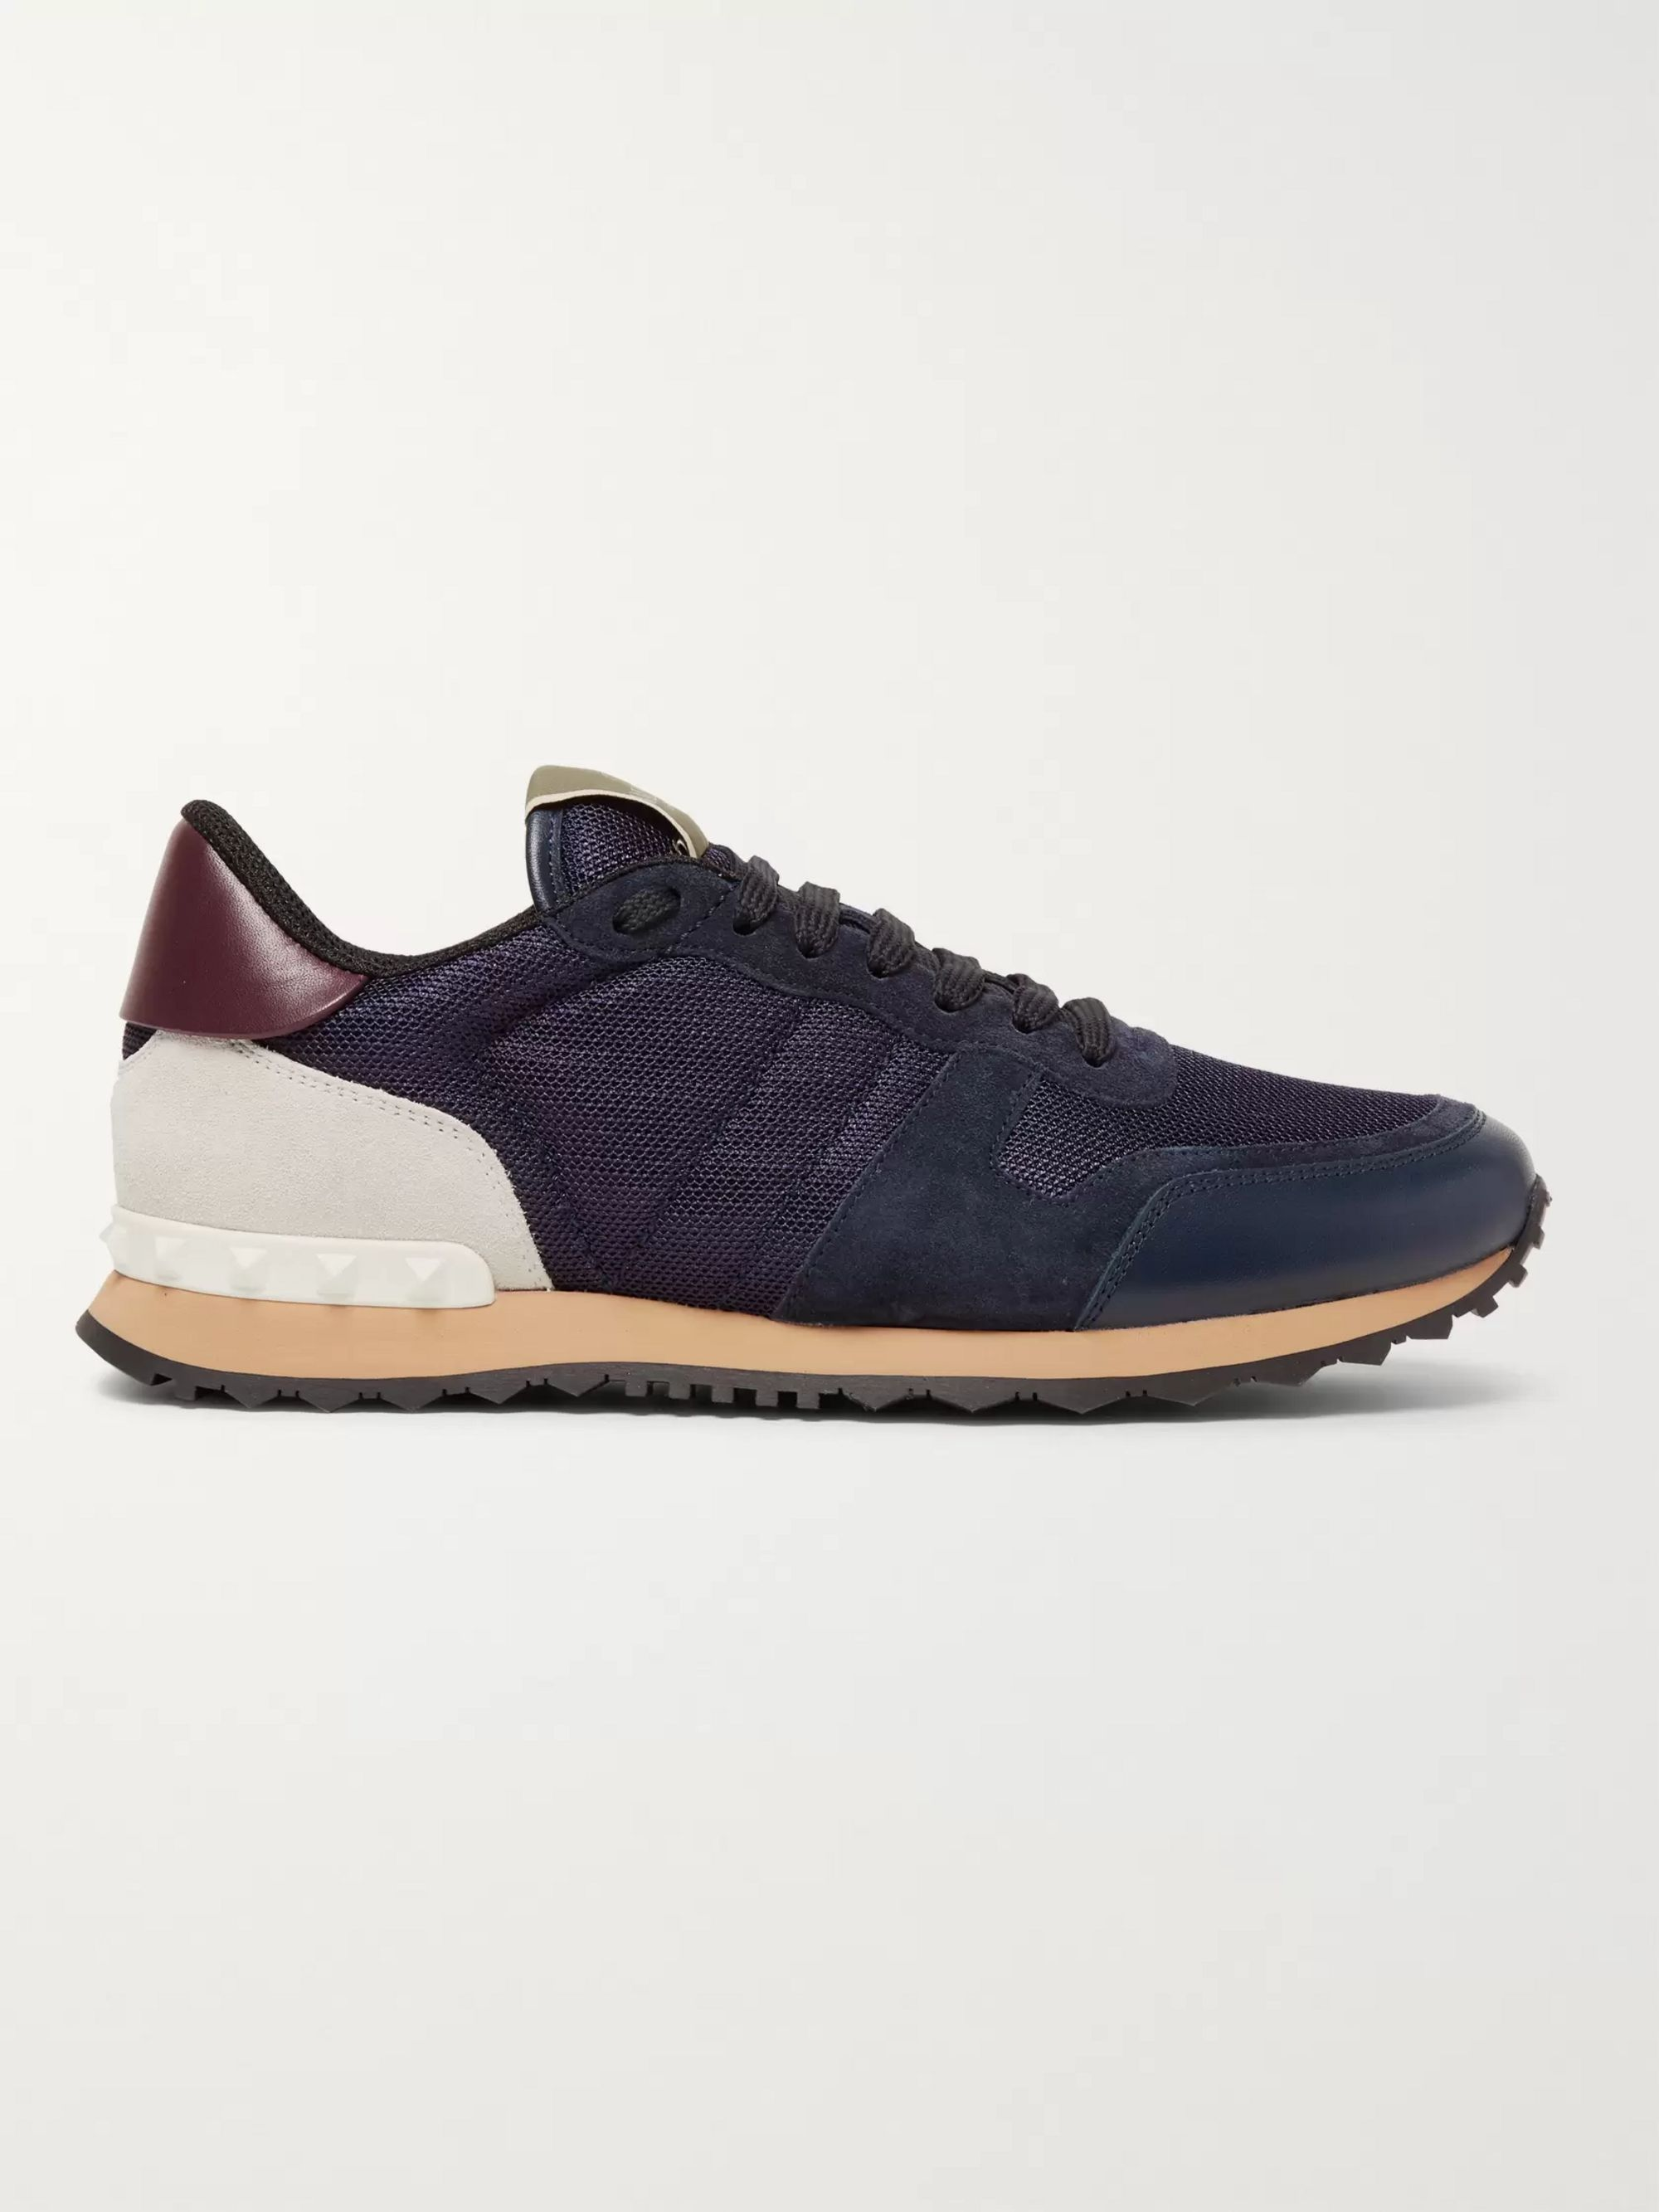 Valentino Valentino Garavani Rockrunner Mesh, Leather and Suede Sneakers